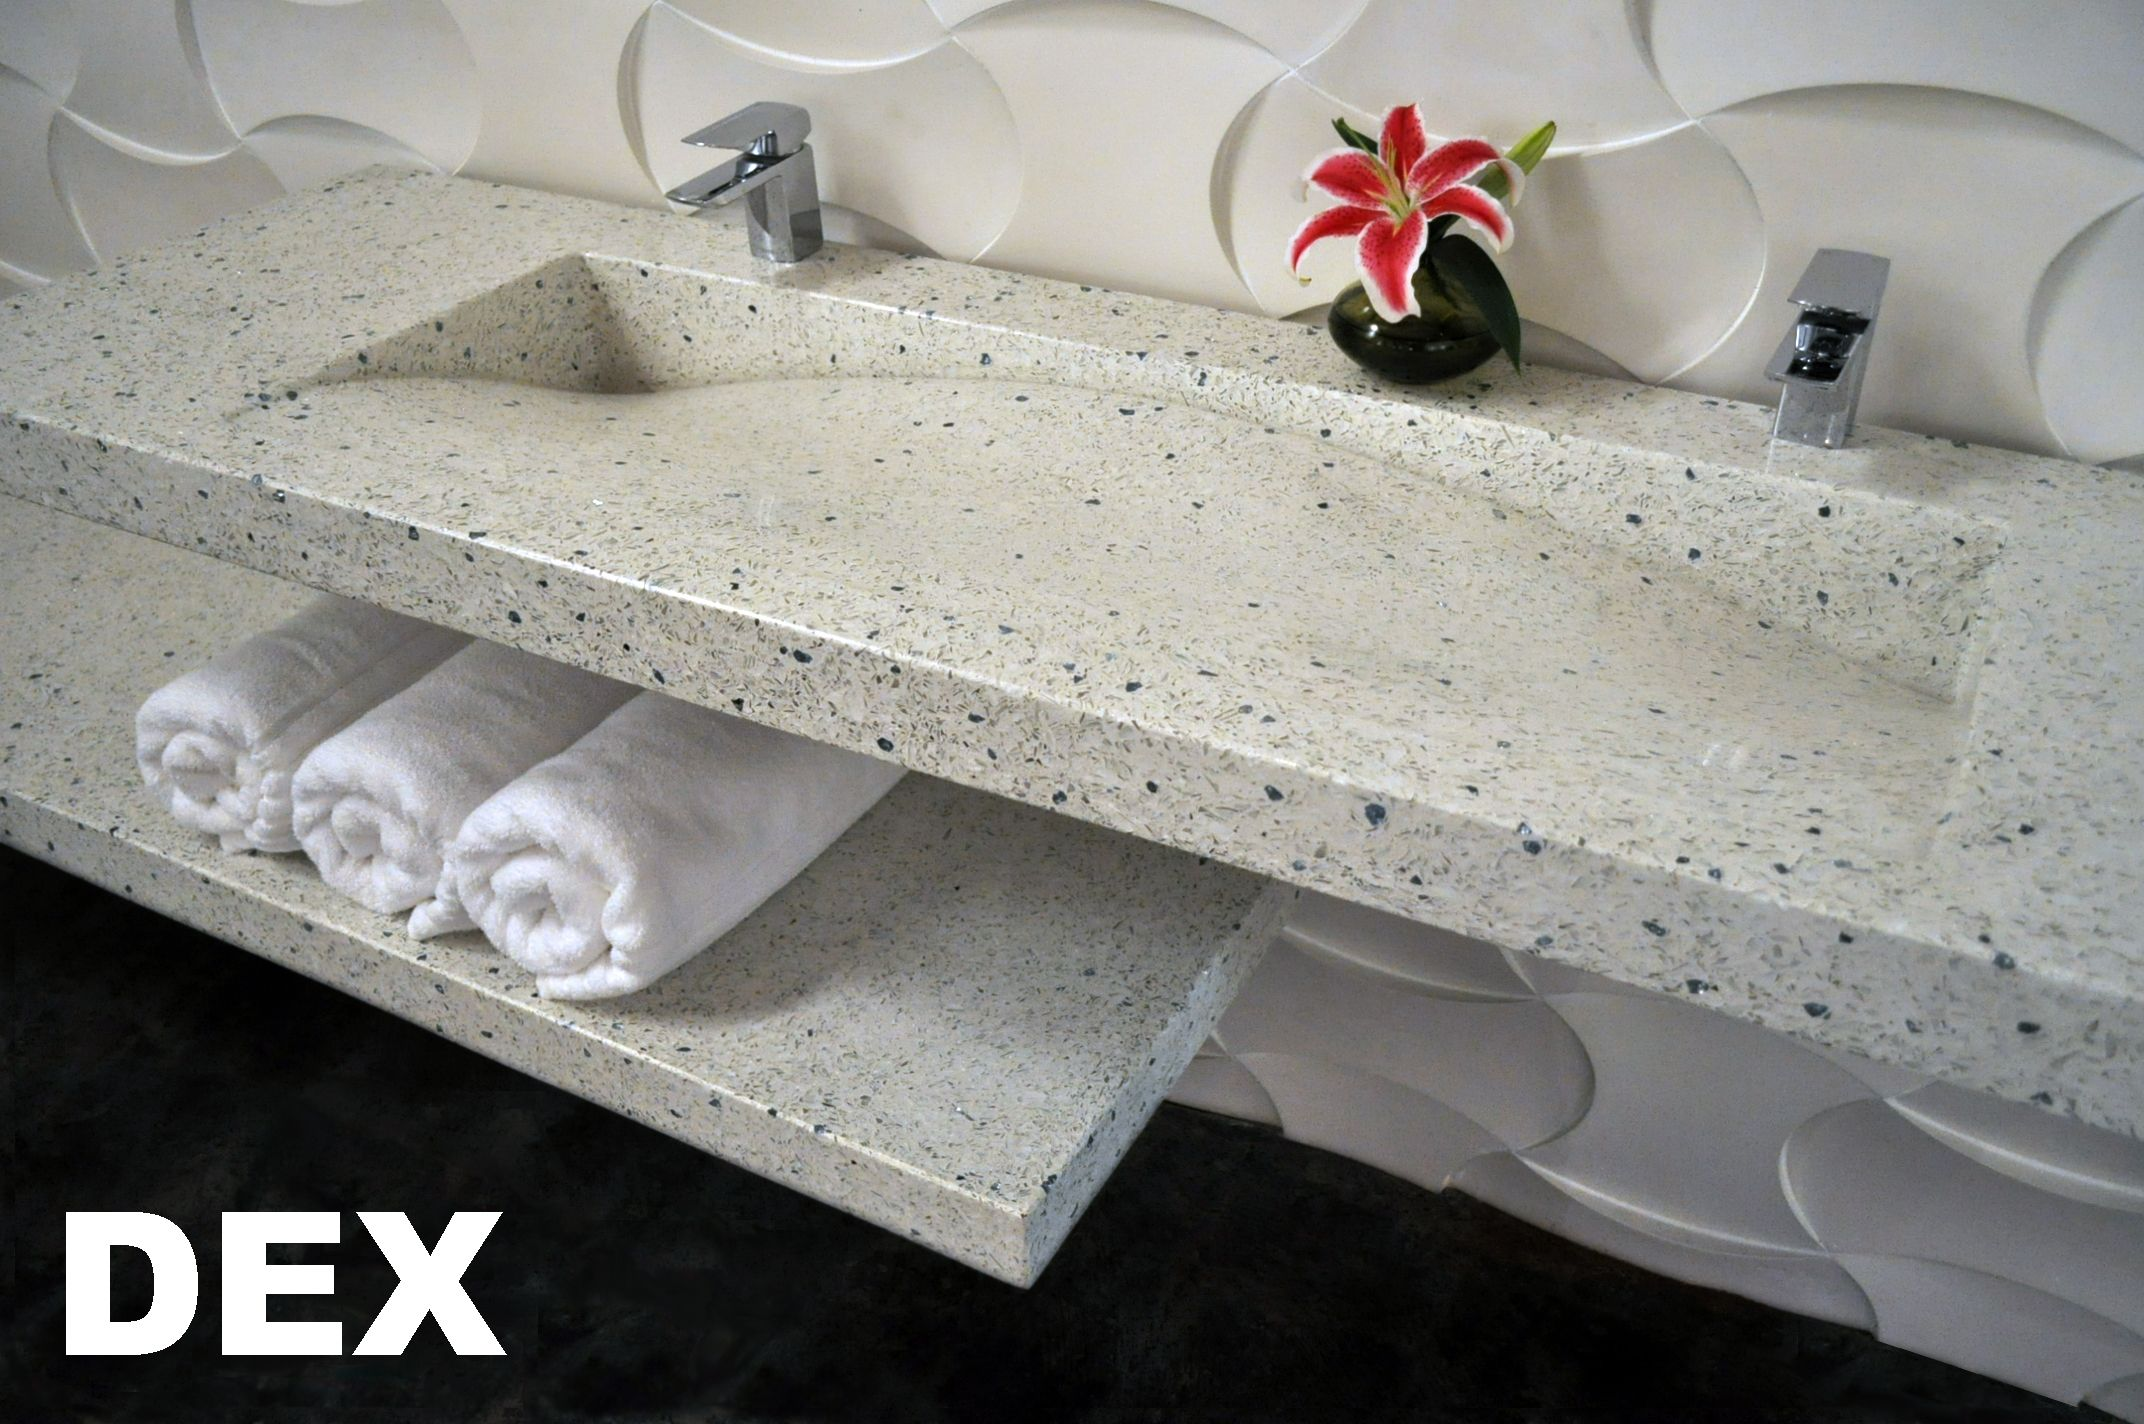 Slope Sink By Dex Made With Either Dexterra Sustainable Glass